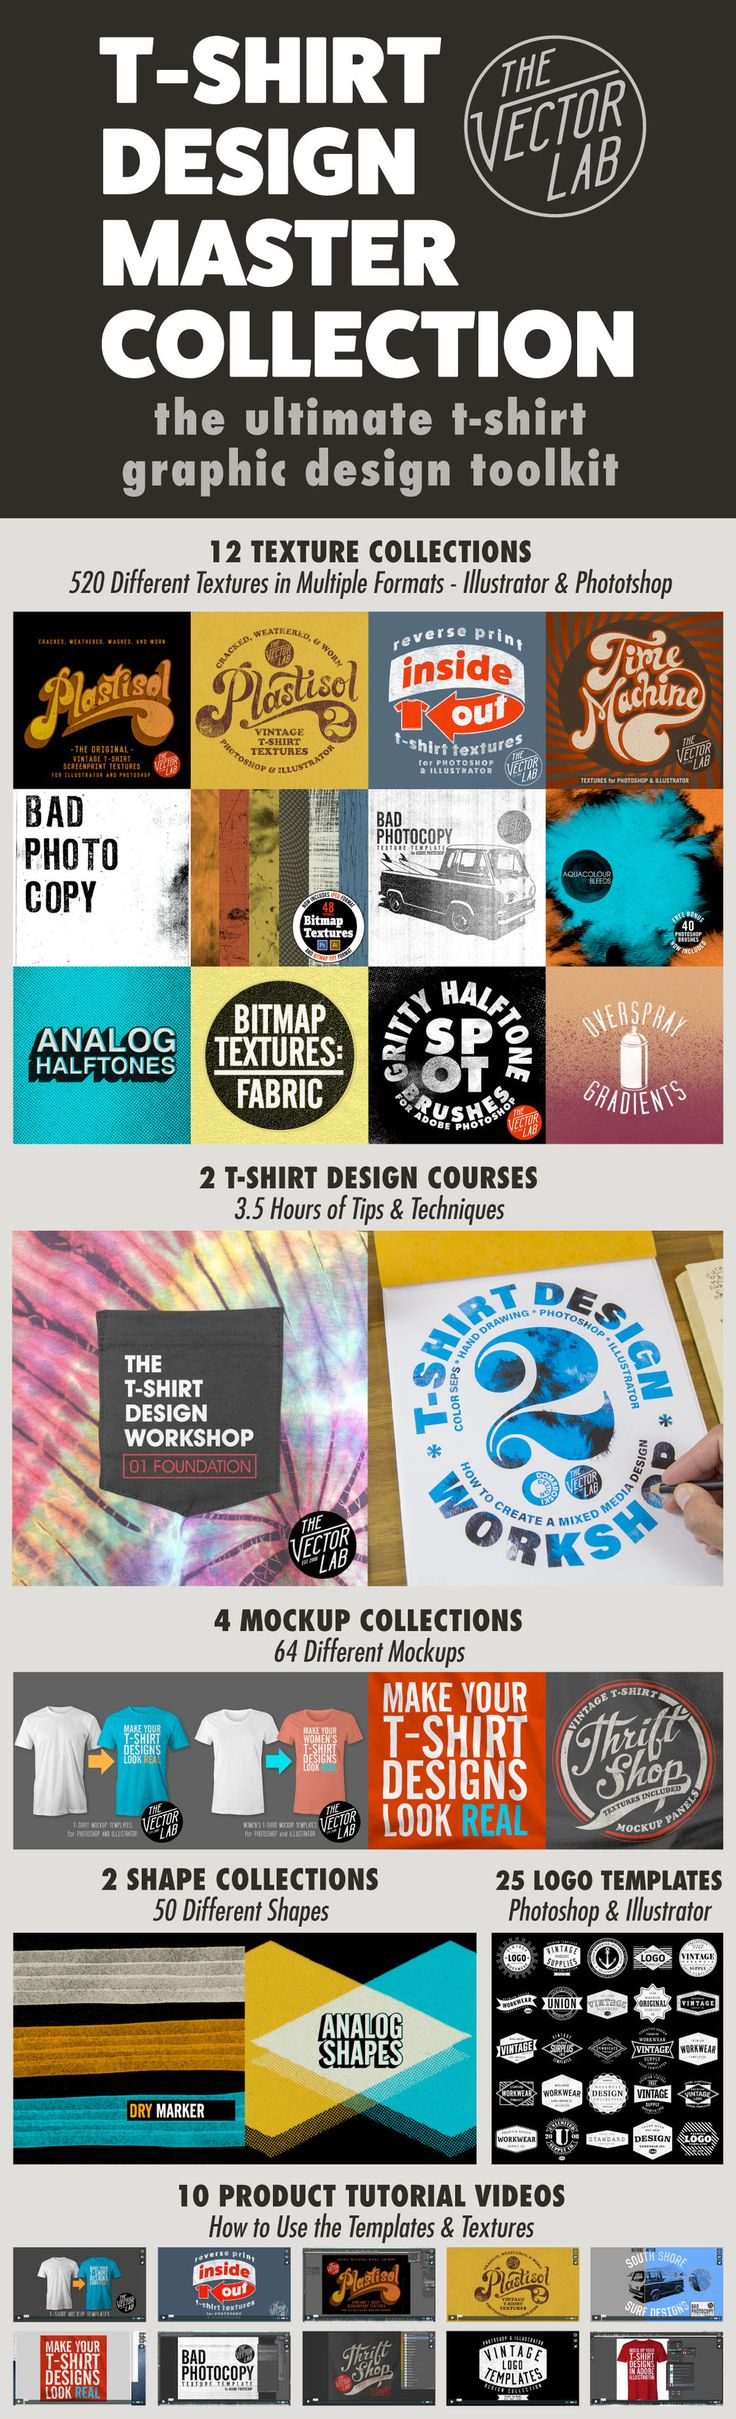 Design t shirt graphics online - As T Shirt Designers We Need To Use The Right Tools To Save Time And Get Top Quality Results This Is The Ultimate T Shirt Graphic Design Toolkit